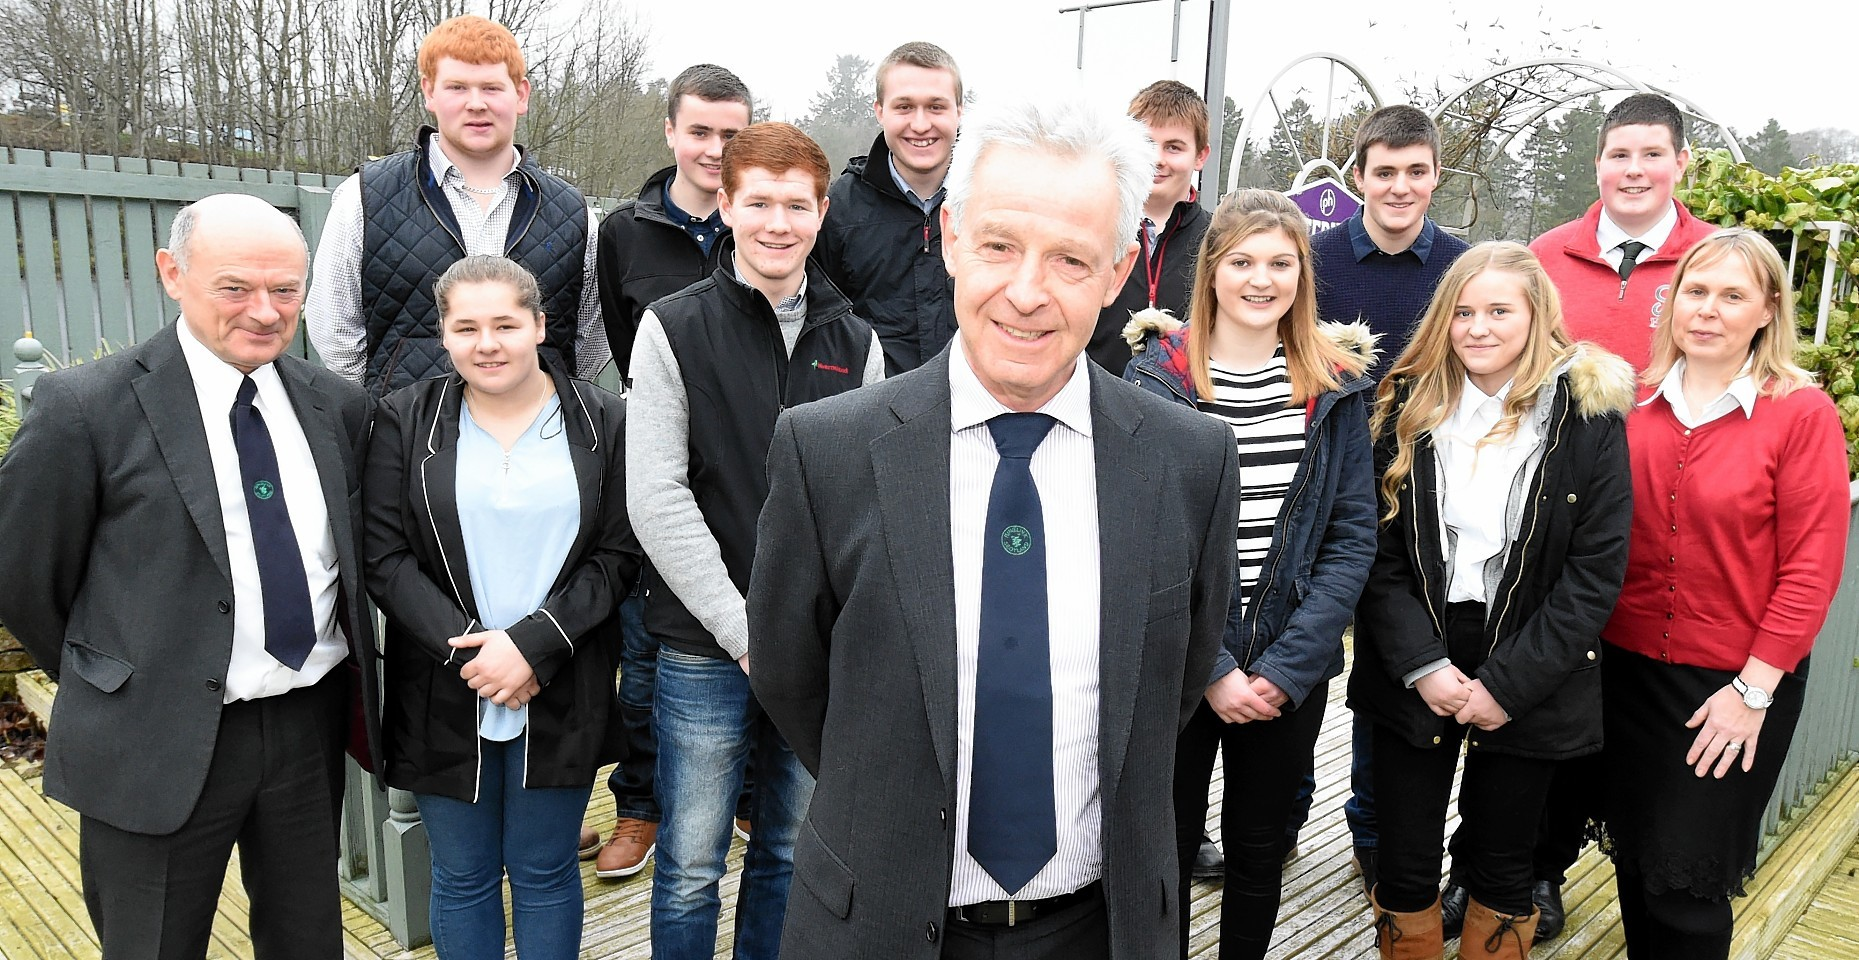 In the picture are front from left: Graham Bruce, managing director: Alannah Craig, Euan Gray, Andrew Moir, chairman: Lyndsay Nelson, Ruth Beaton and Gail Robertson, marketing and development manager. Back row from left: Andrew Beattie, Jordan Stewart, Ben Franklin, Russell Leslie, Liam Teunion and Harry Sleigh.